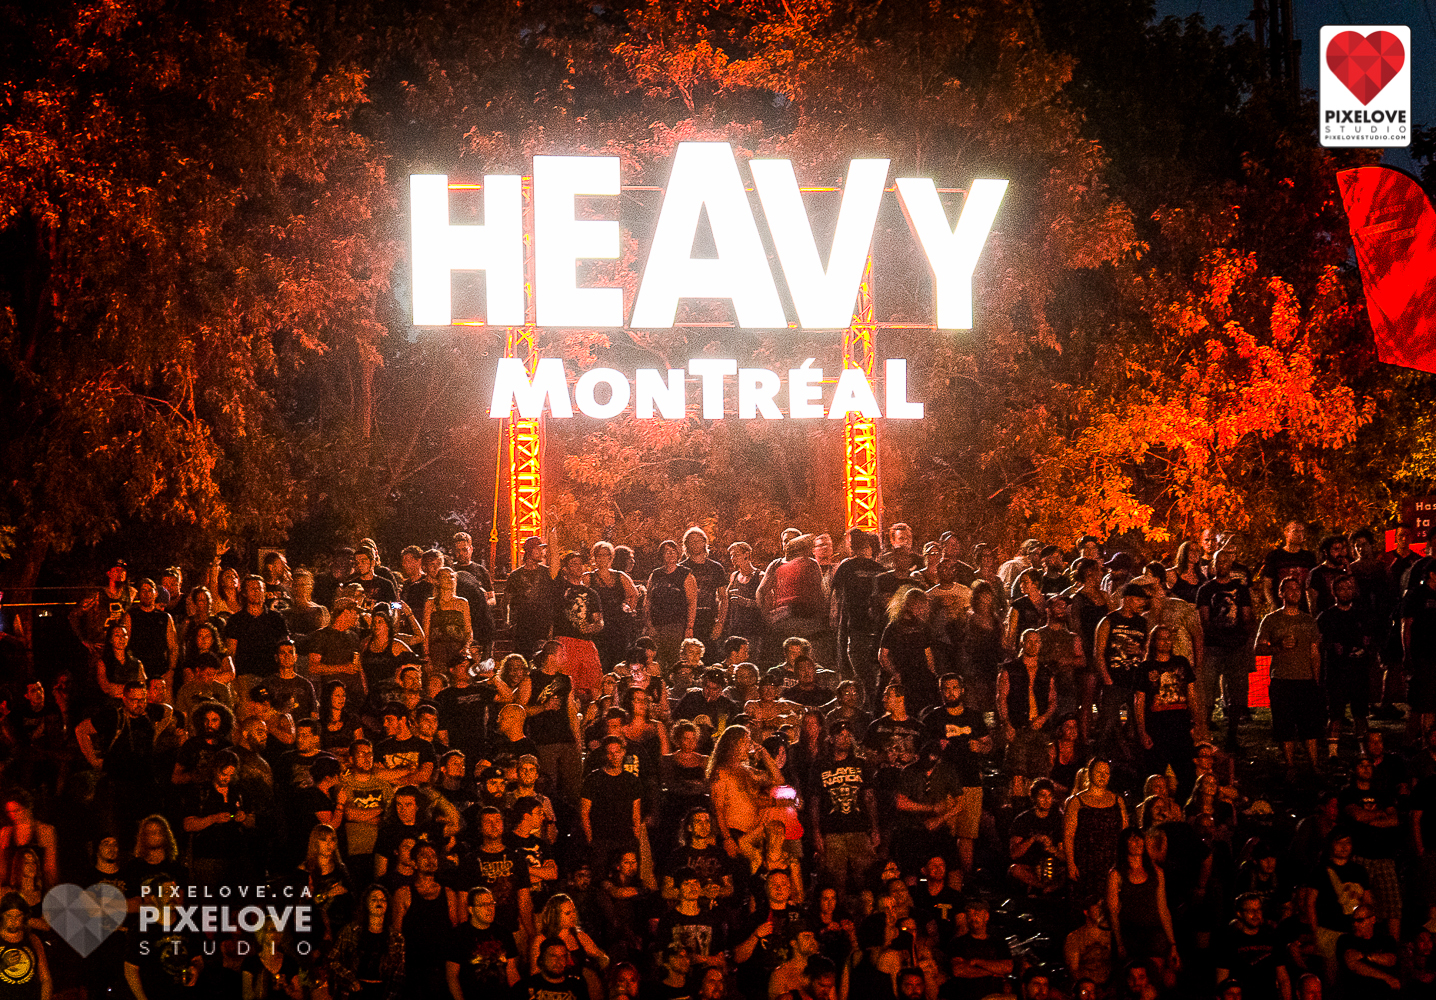 Heavy Montreal 2014 heavy metal music festival at Parc Jean-Drapeau.